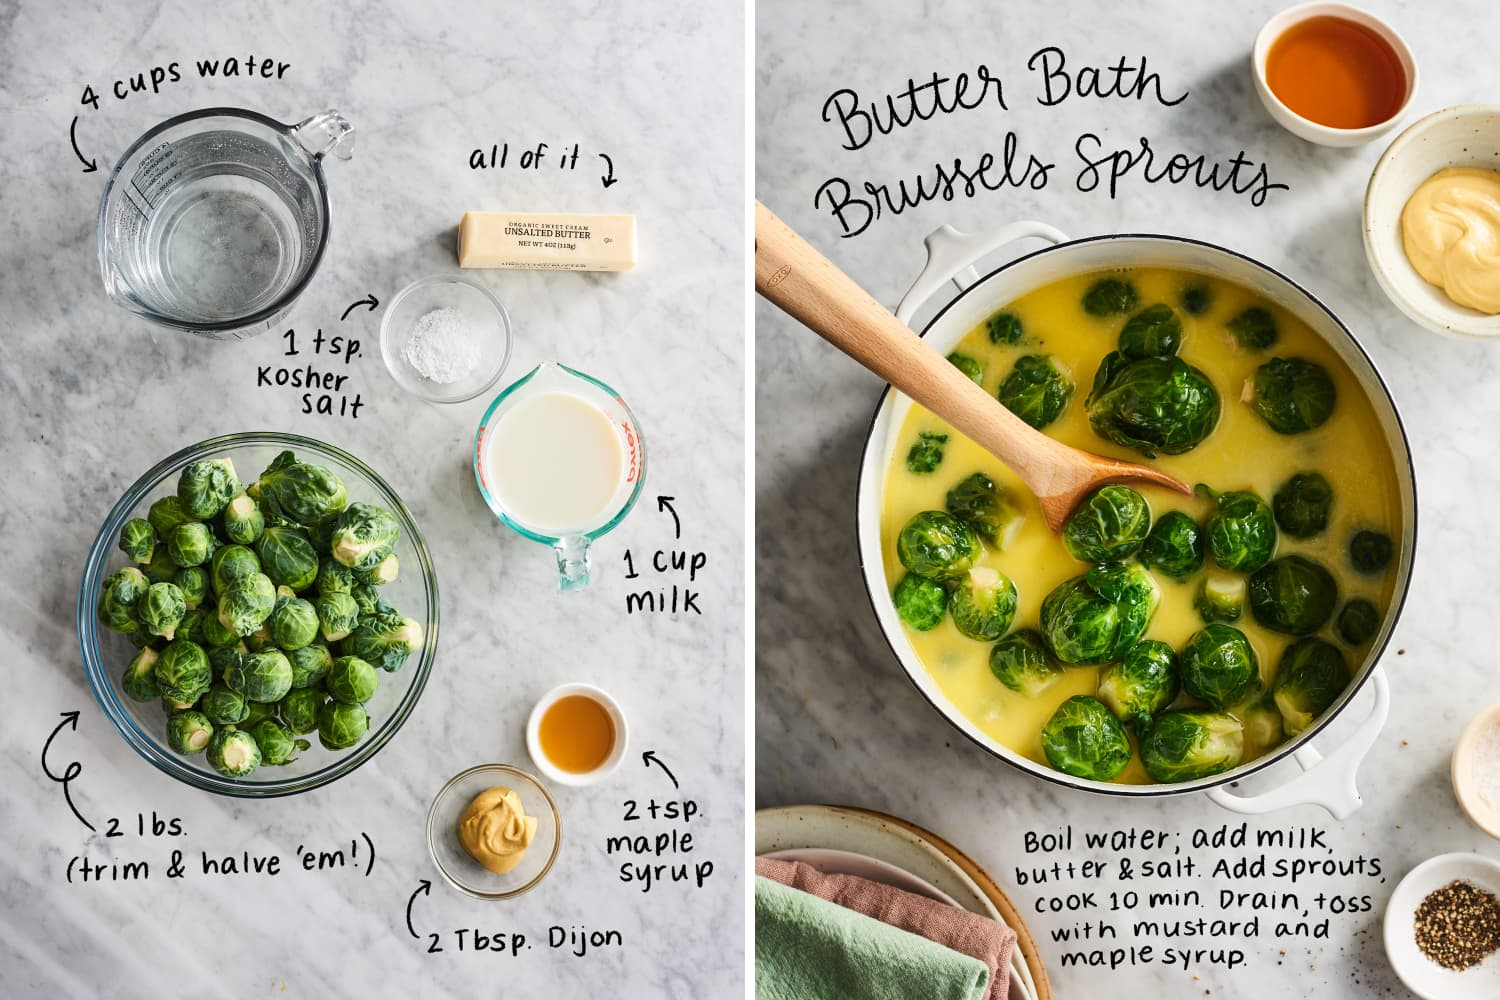 5 Thanksgiving Vegetables You Can Cook in a Butter Bath